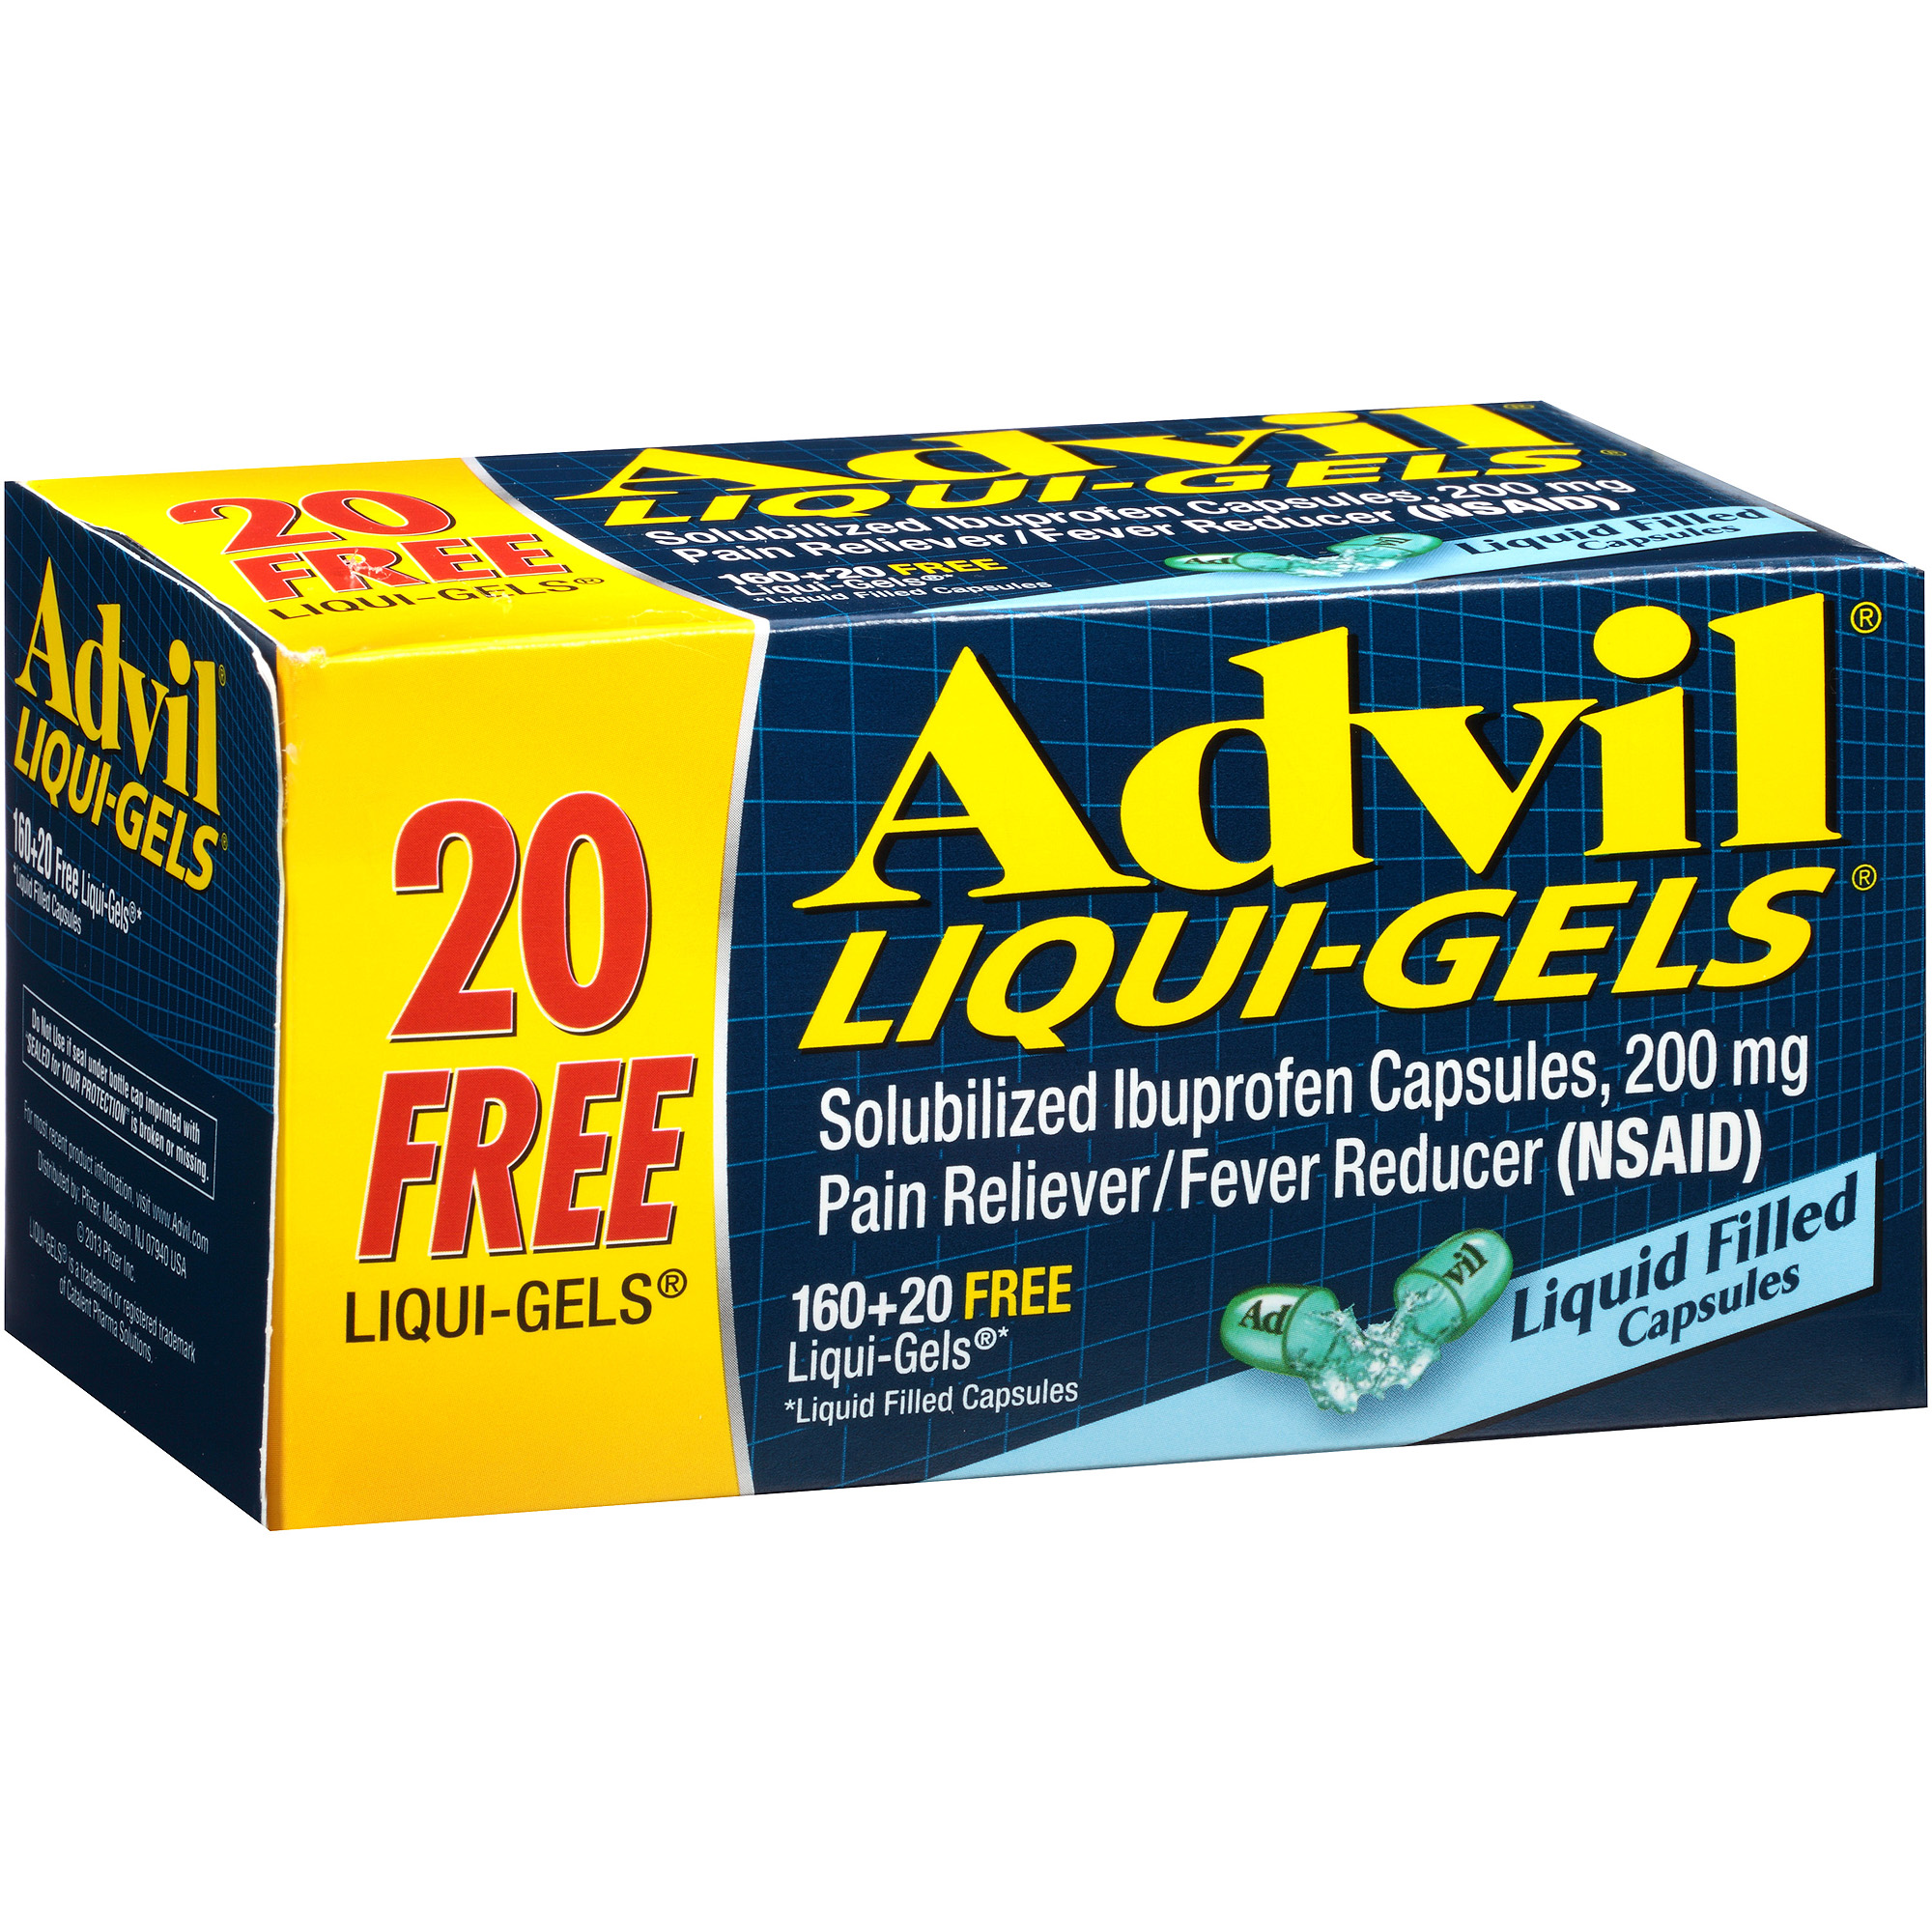 Advil Liqui-Gels (180 Count) Pain Reliever / Fever Reducer Liquid Filled Capsule, 200mg Ibuprofen, Temporary Pain Relief